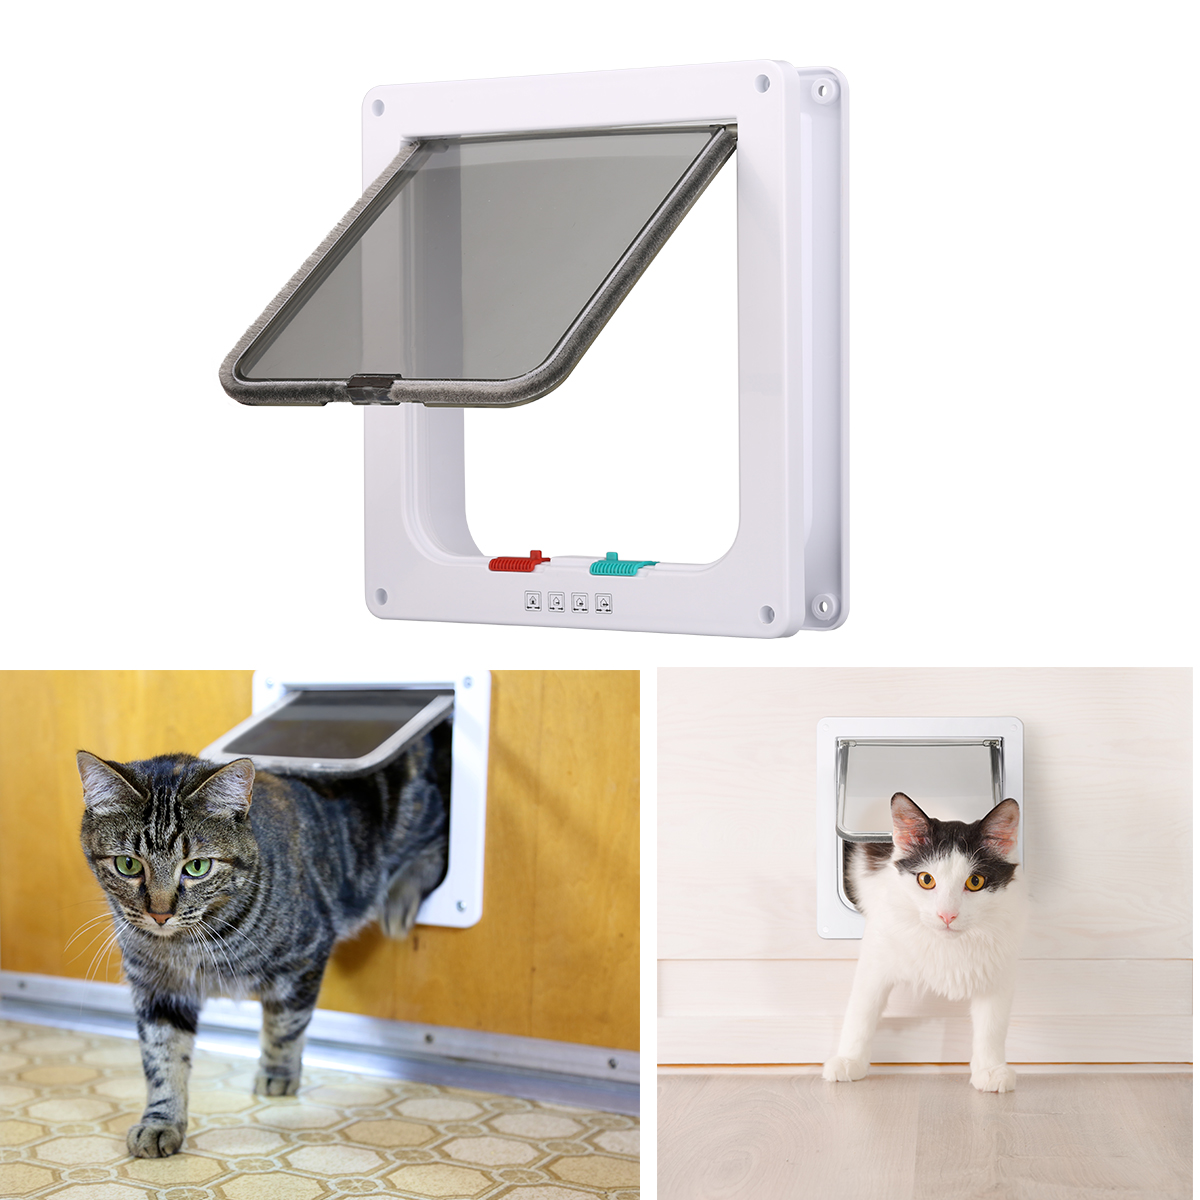 4 Way Lockable Dog Cat Kitten Door Security Flap Door Abs Plastic Size S Animal Small Pet Cat Dog Gate Door Pet Puppy Supplies